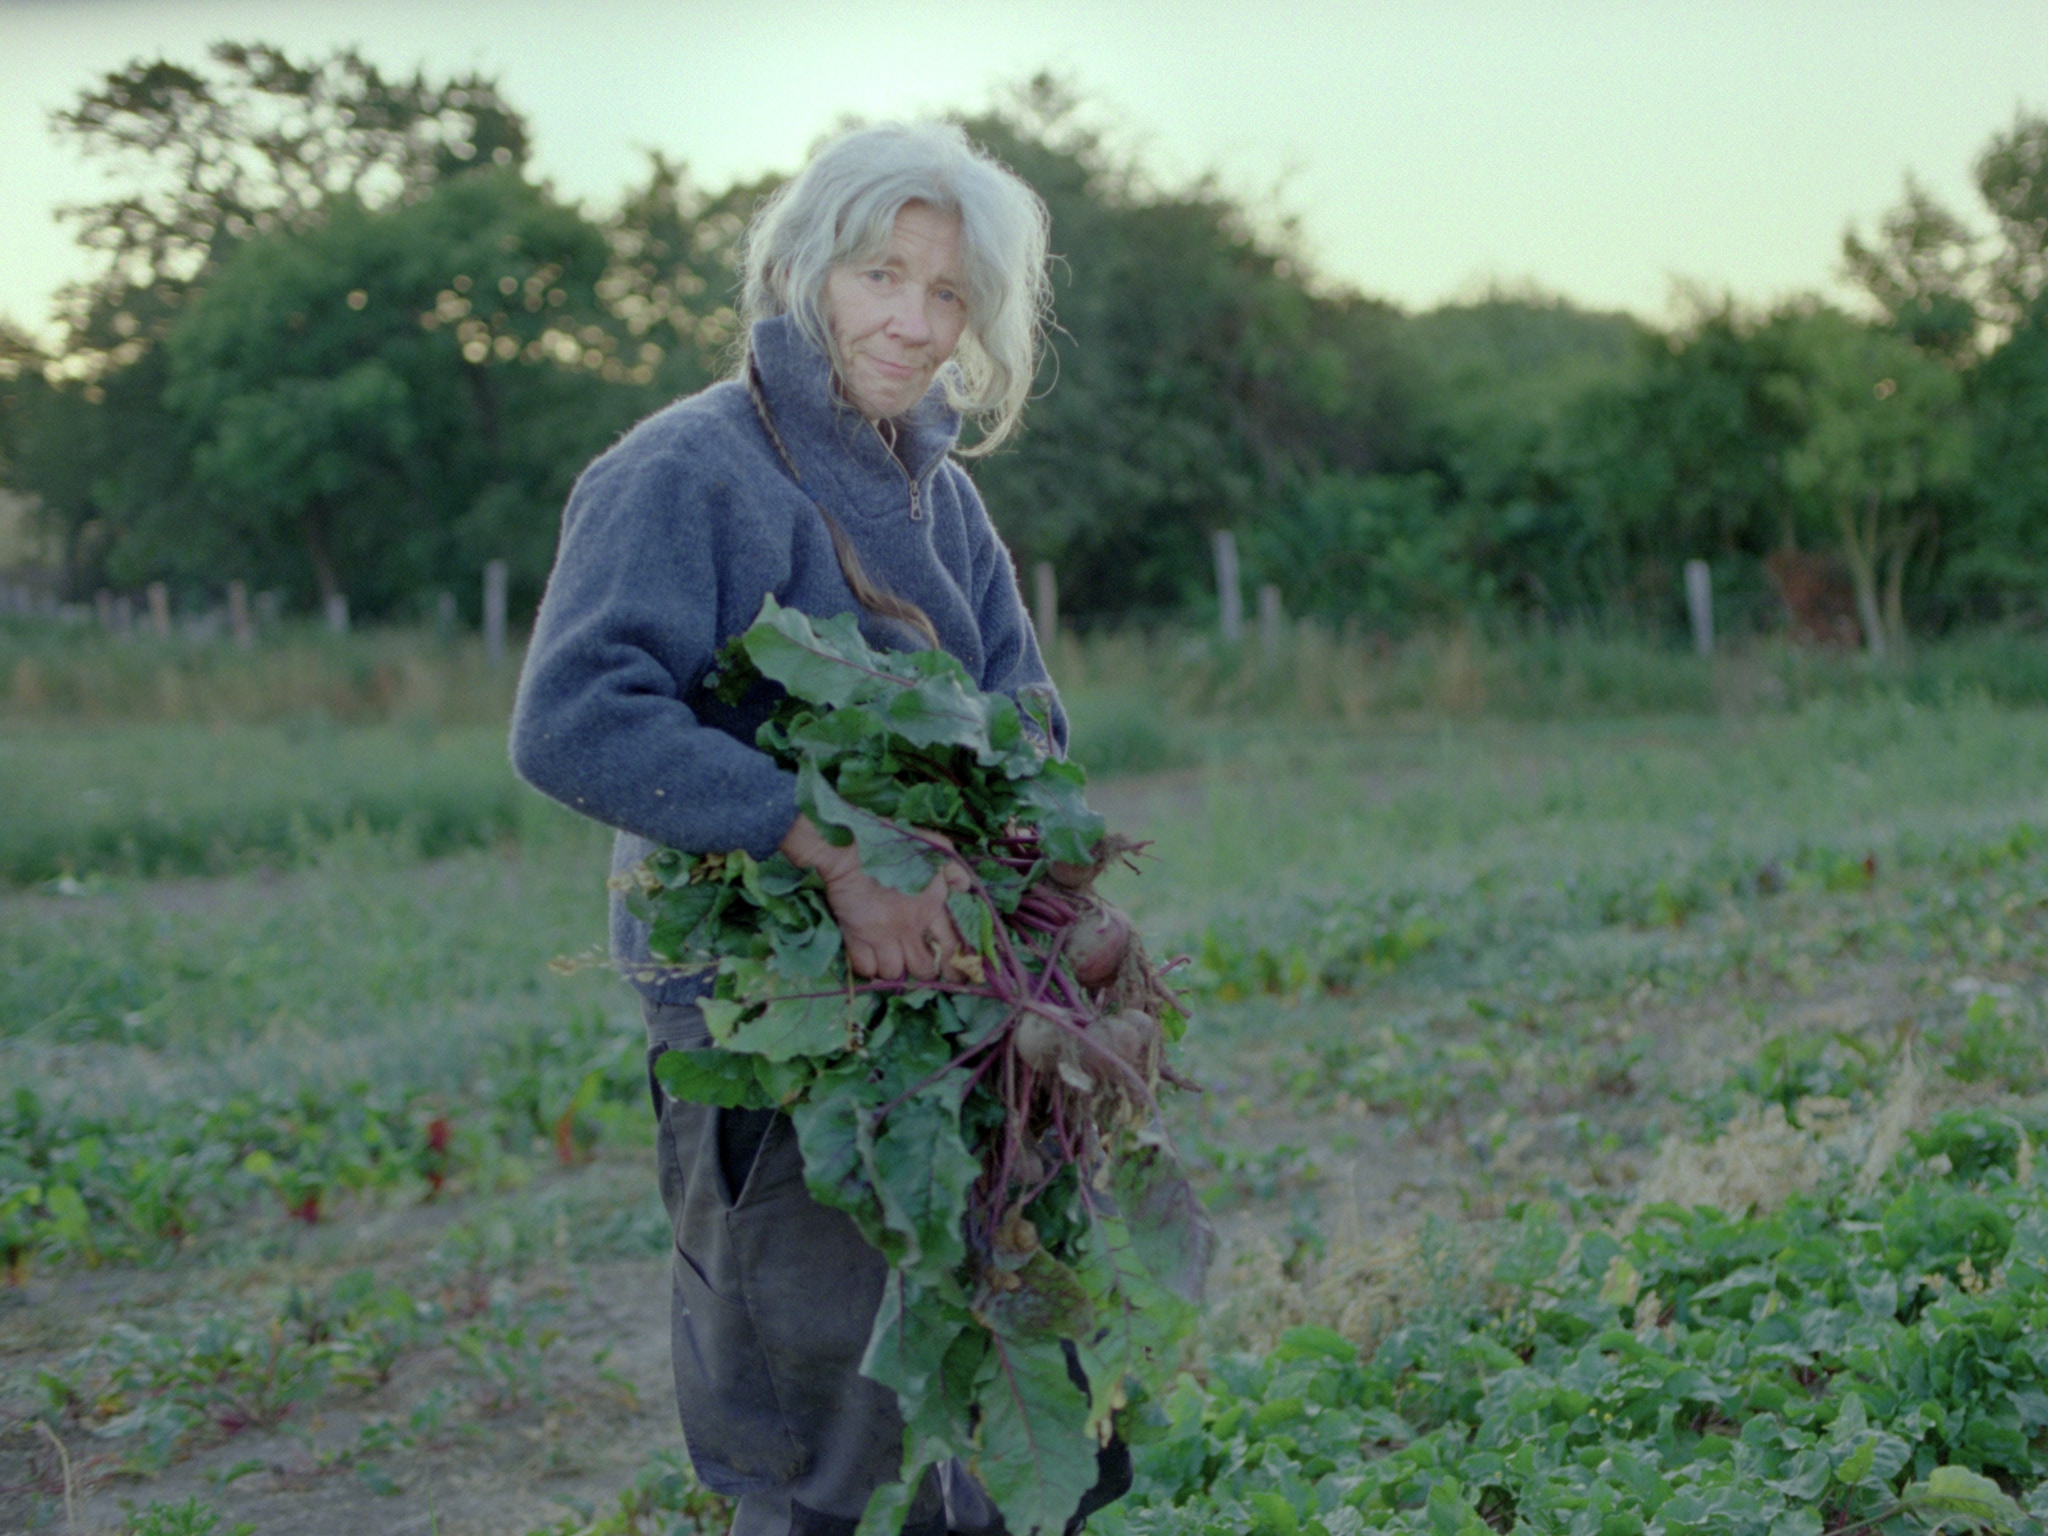 An older woman standing in a field, holding a bunch of beetroot and looking at the camera.